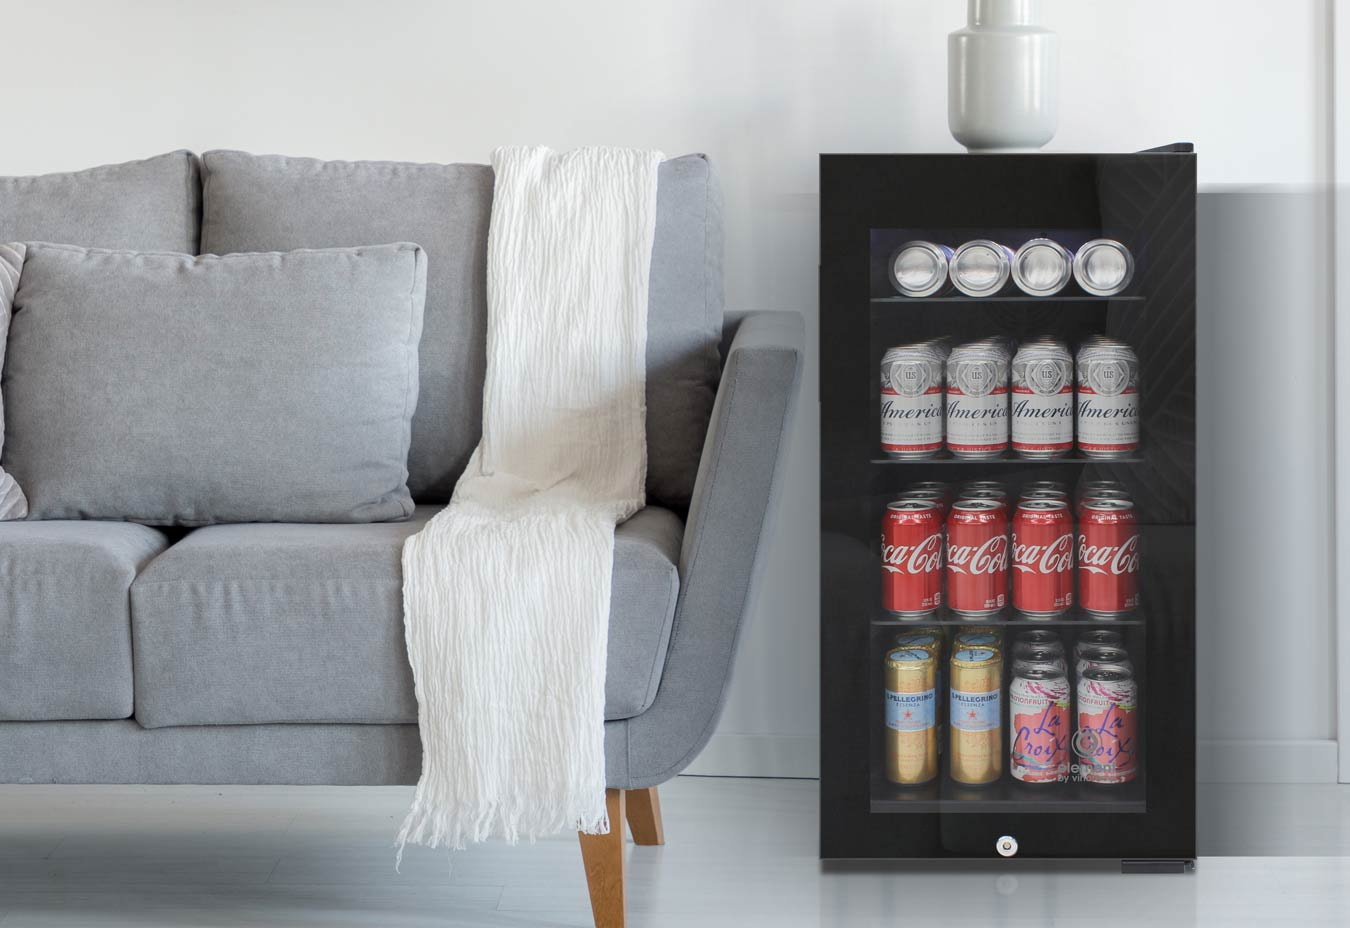 small black fridge next to gray couch